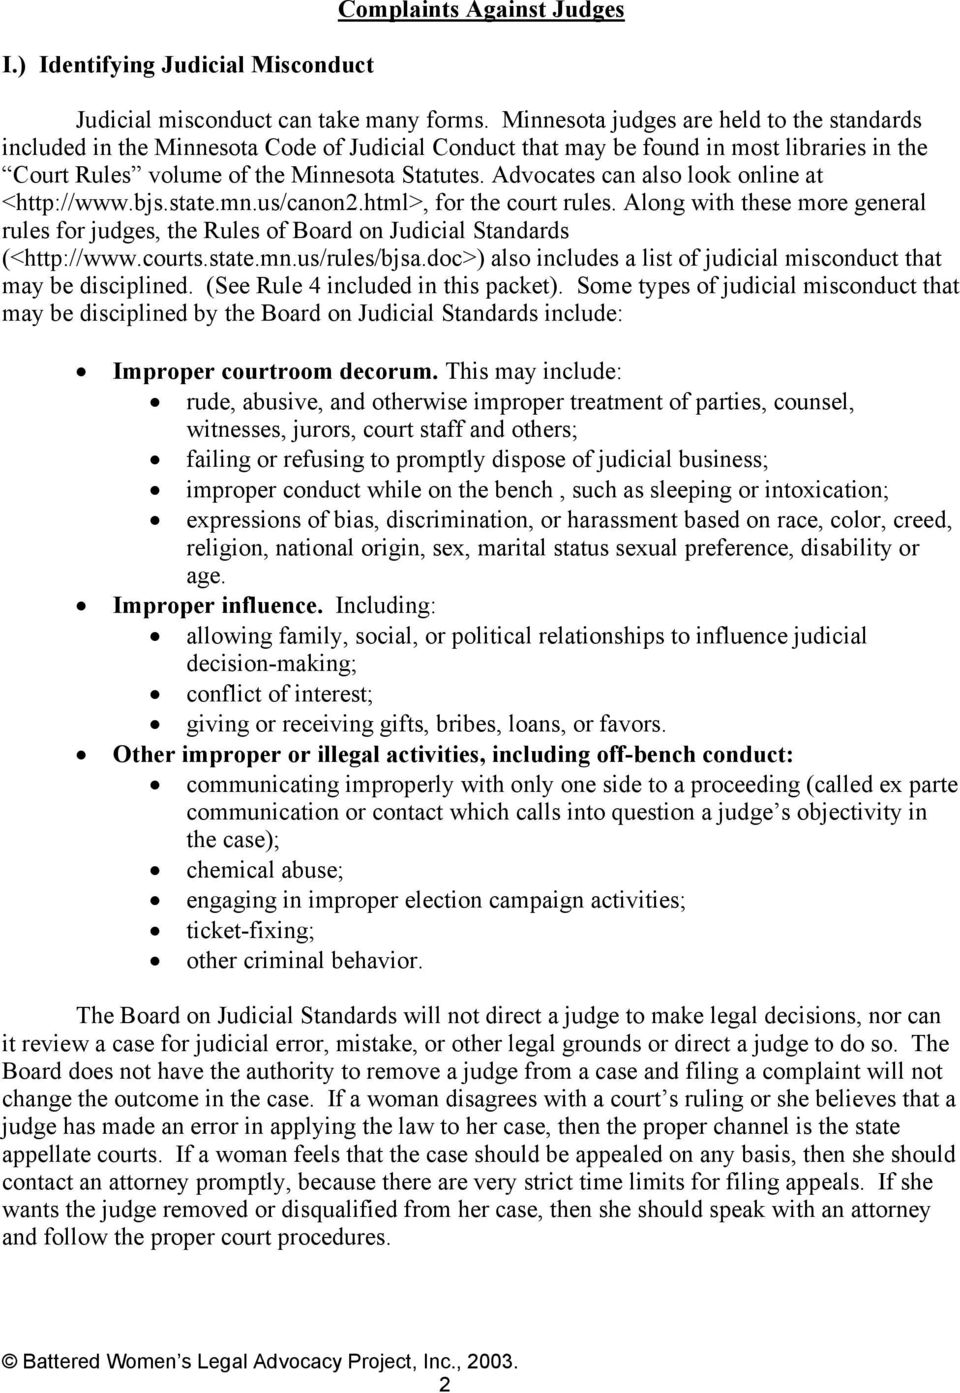 Advocates can also look online at <http://www.bjs.state.mn.us/canon2.html>, for the court rules. Along with these more general rules for judges, the Rules of Board on Judicial Standards (<http://www.